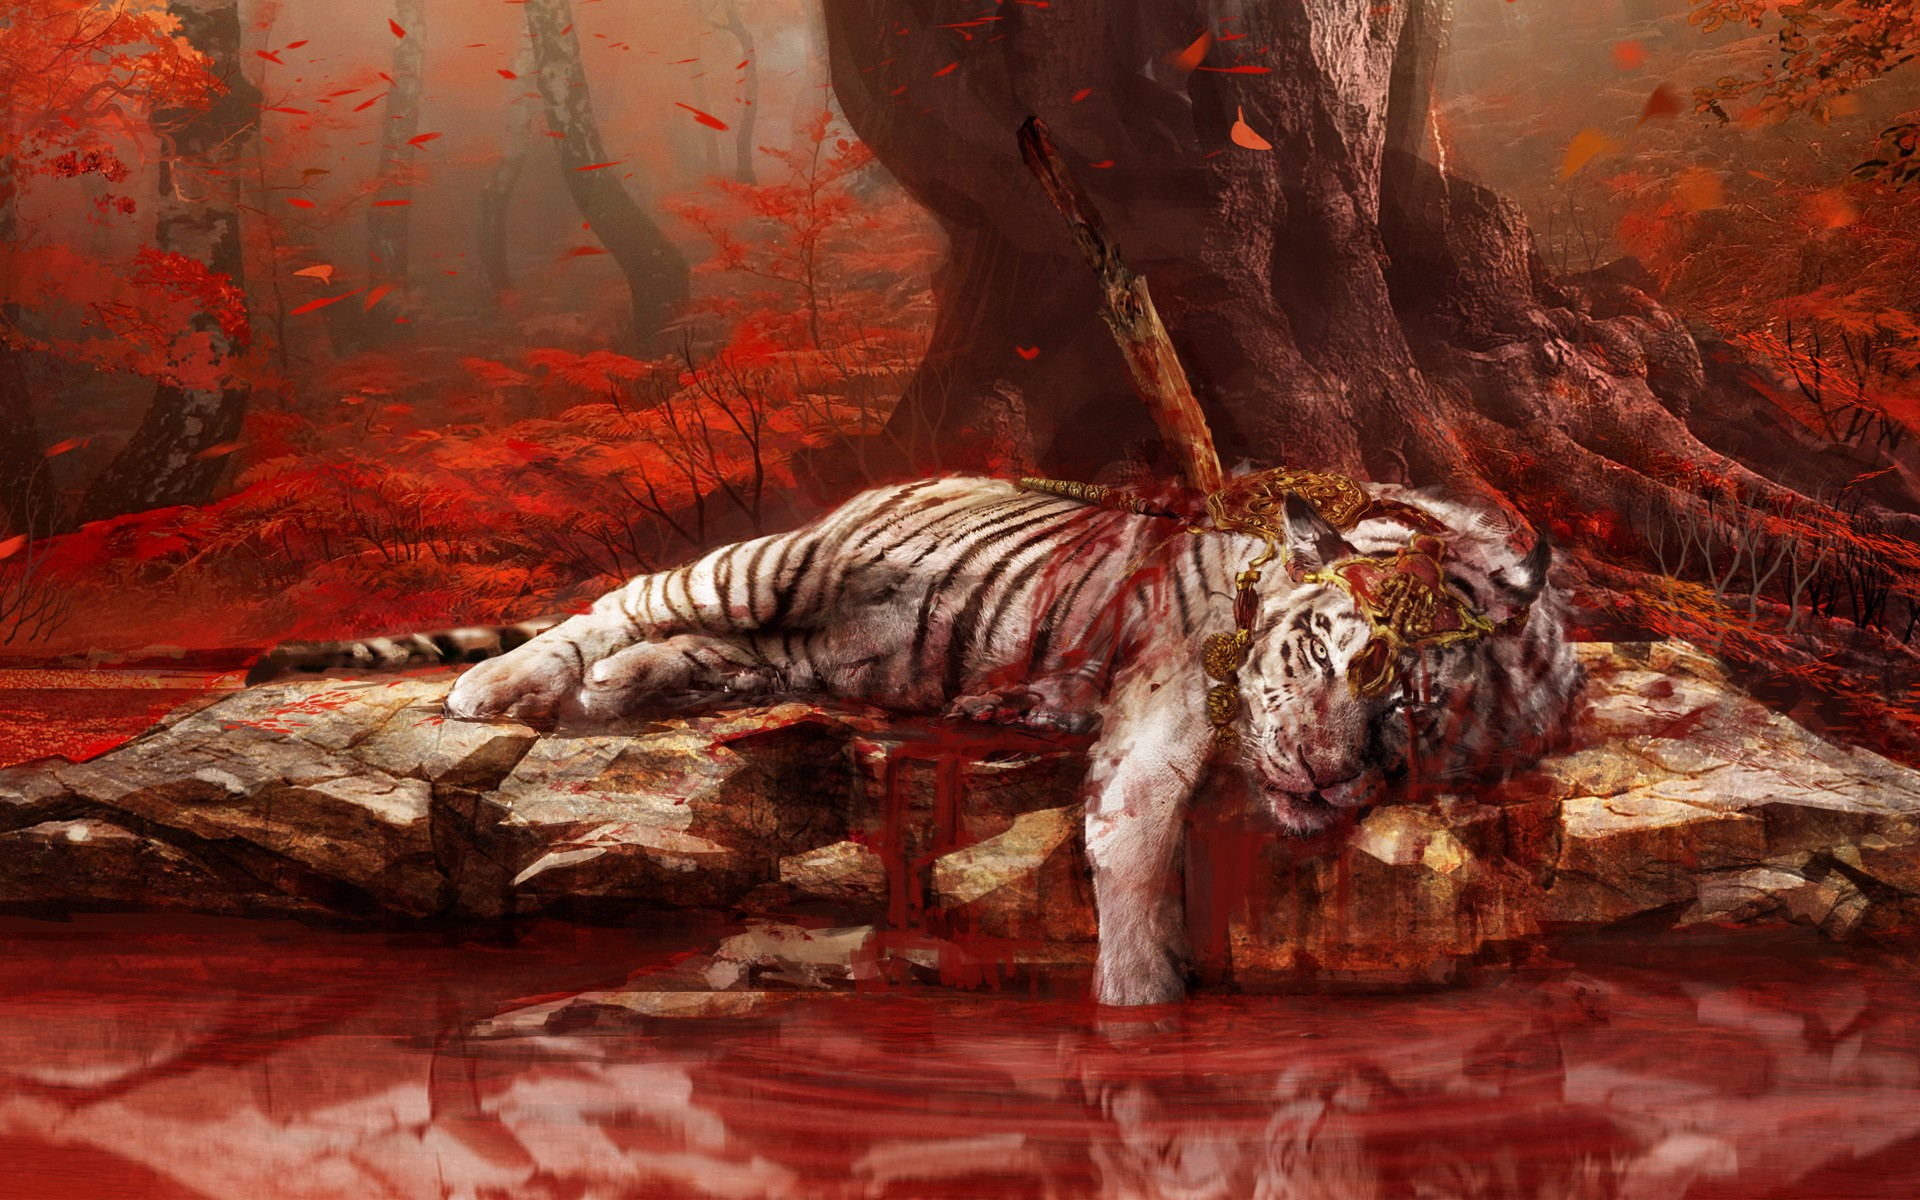 Cute Bengal Wallpapers Hd 1366x768 Dead Tiger In Far Cry 4 Hd Games 4k Wallpapers Images